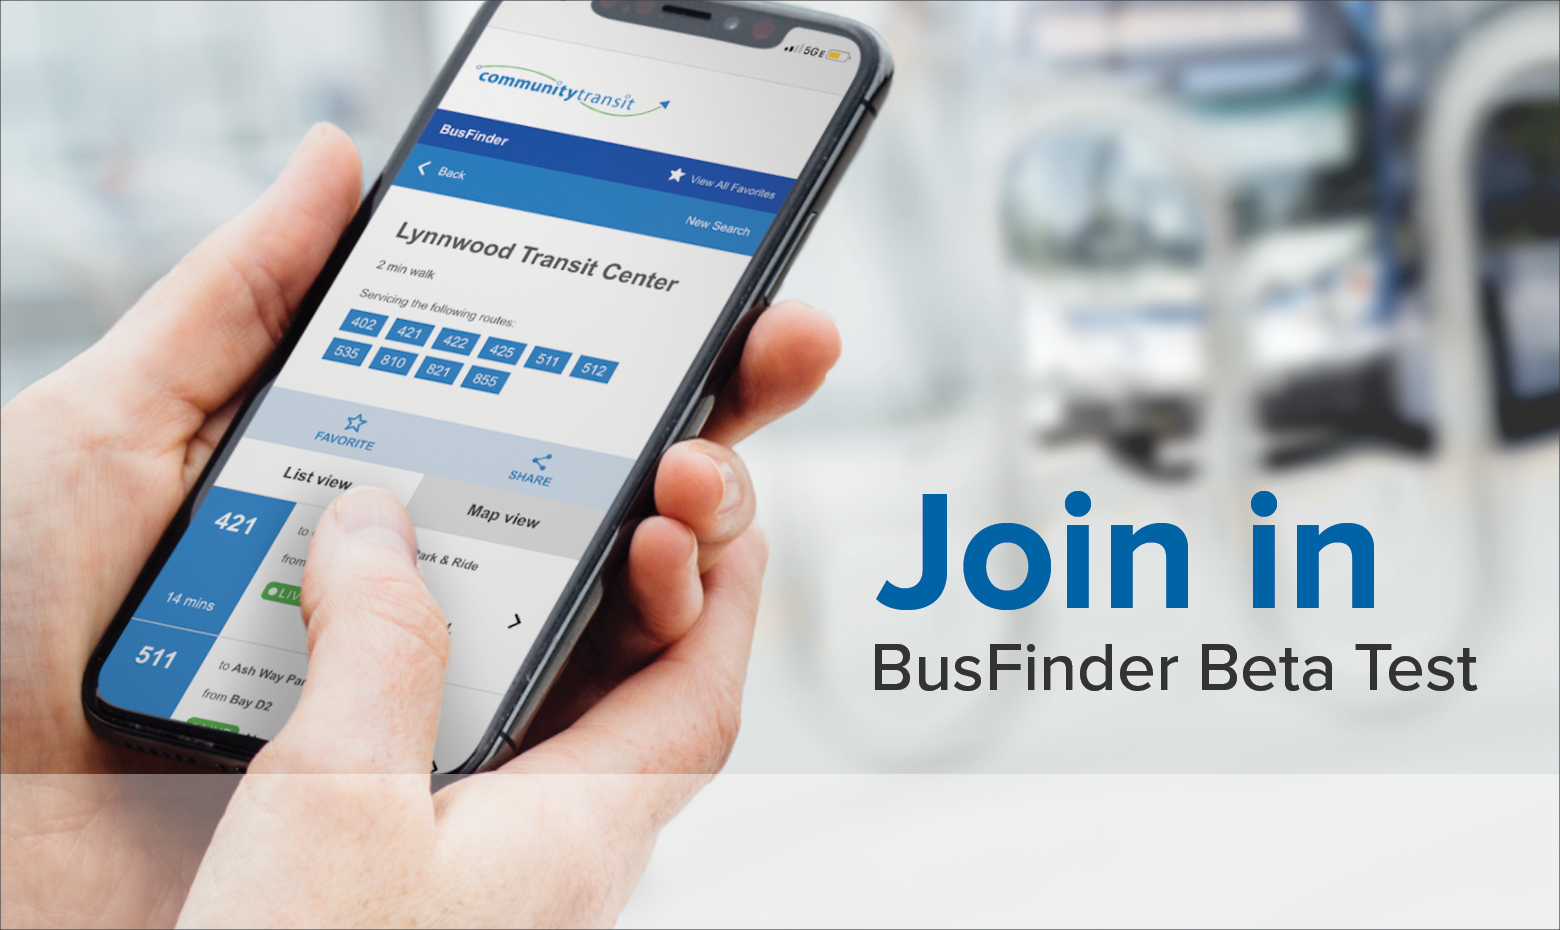 BusFinder BETA - Try our real-time transit info app